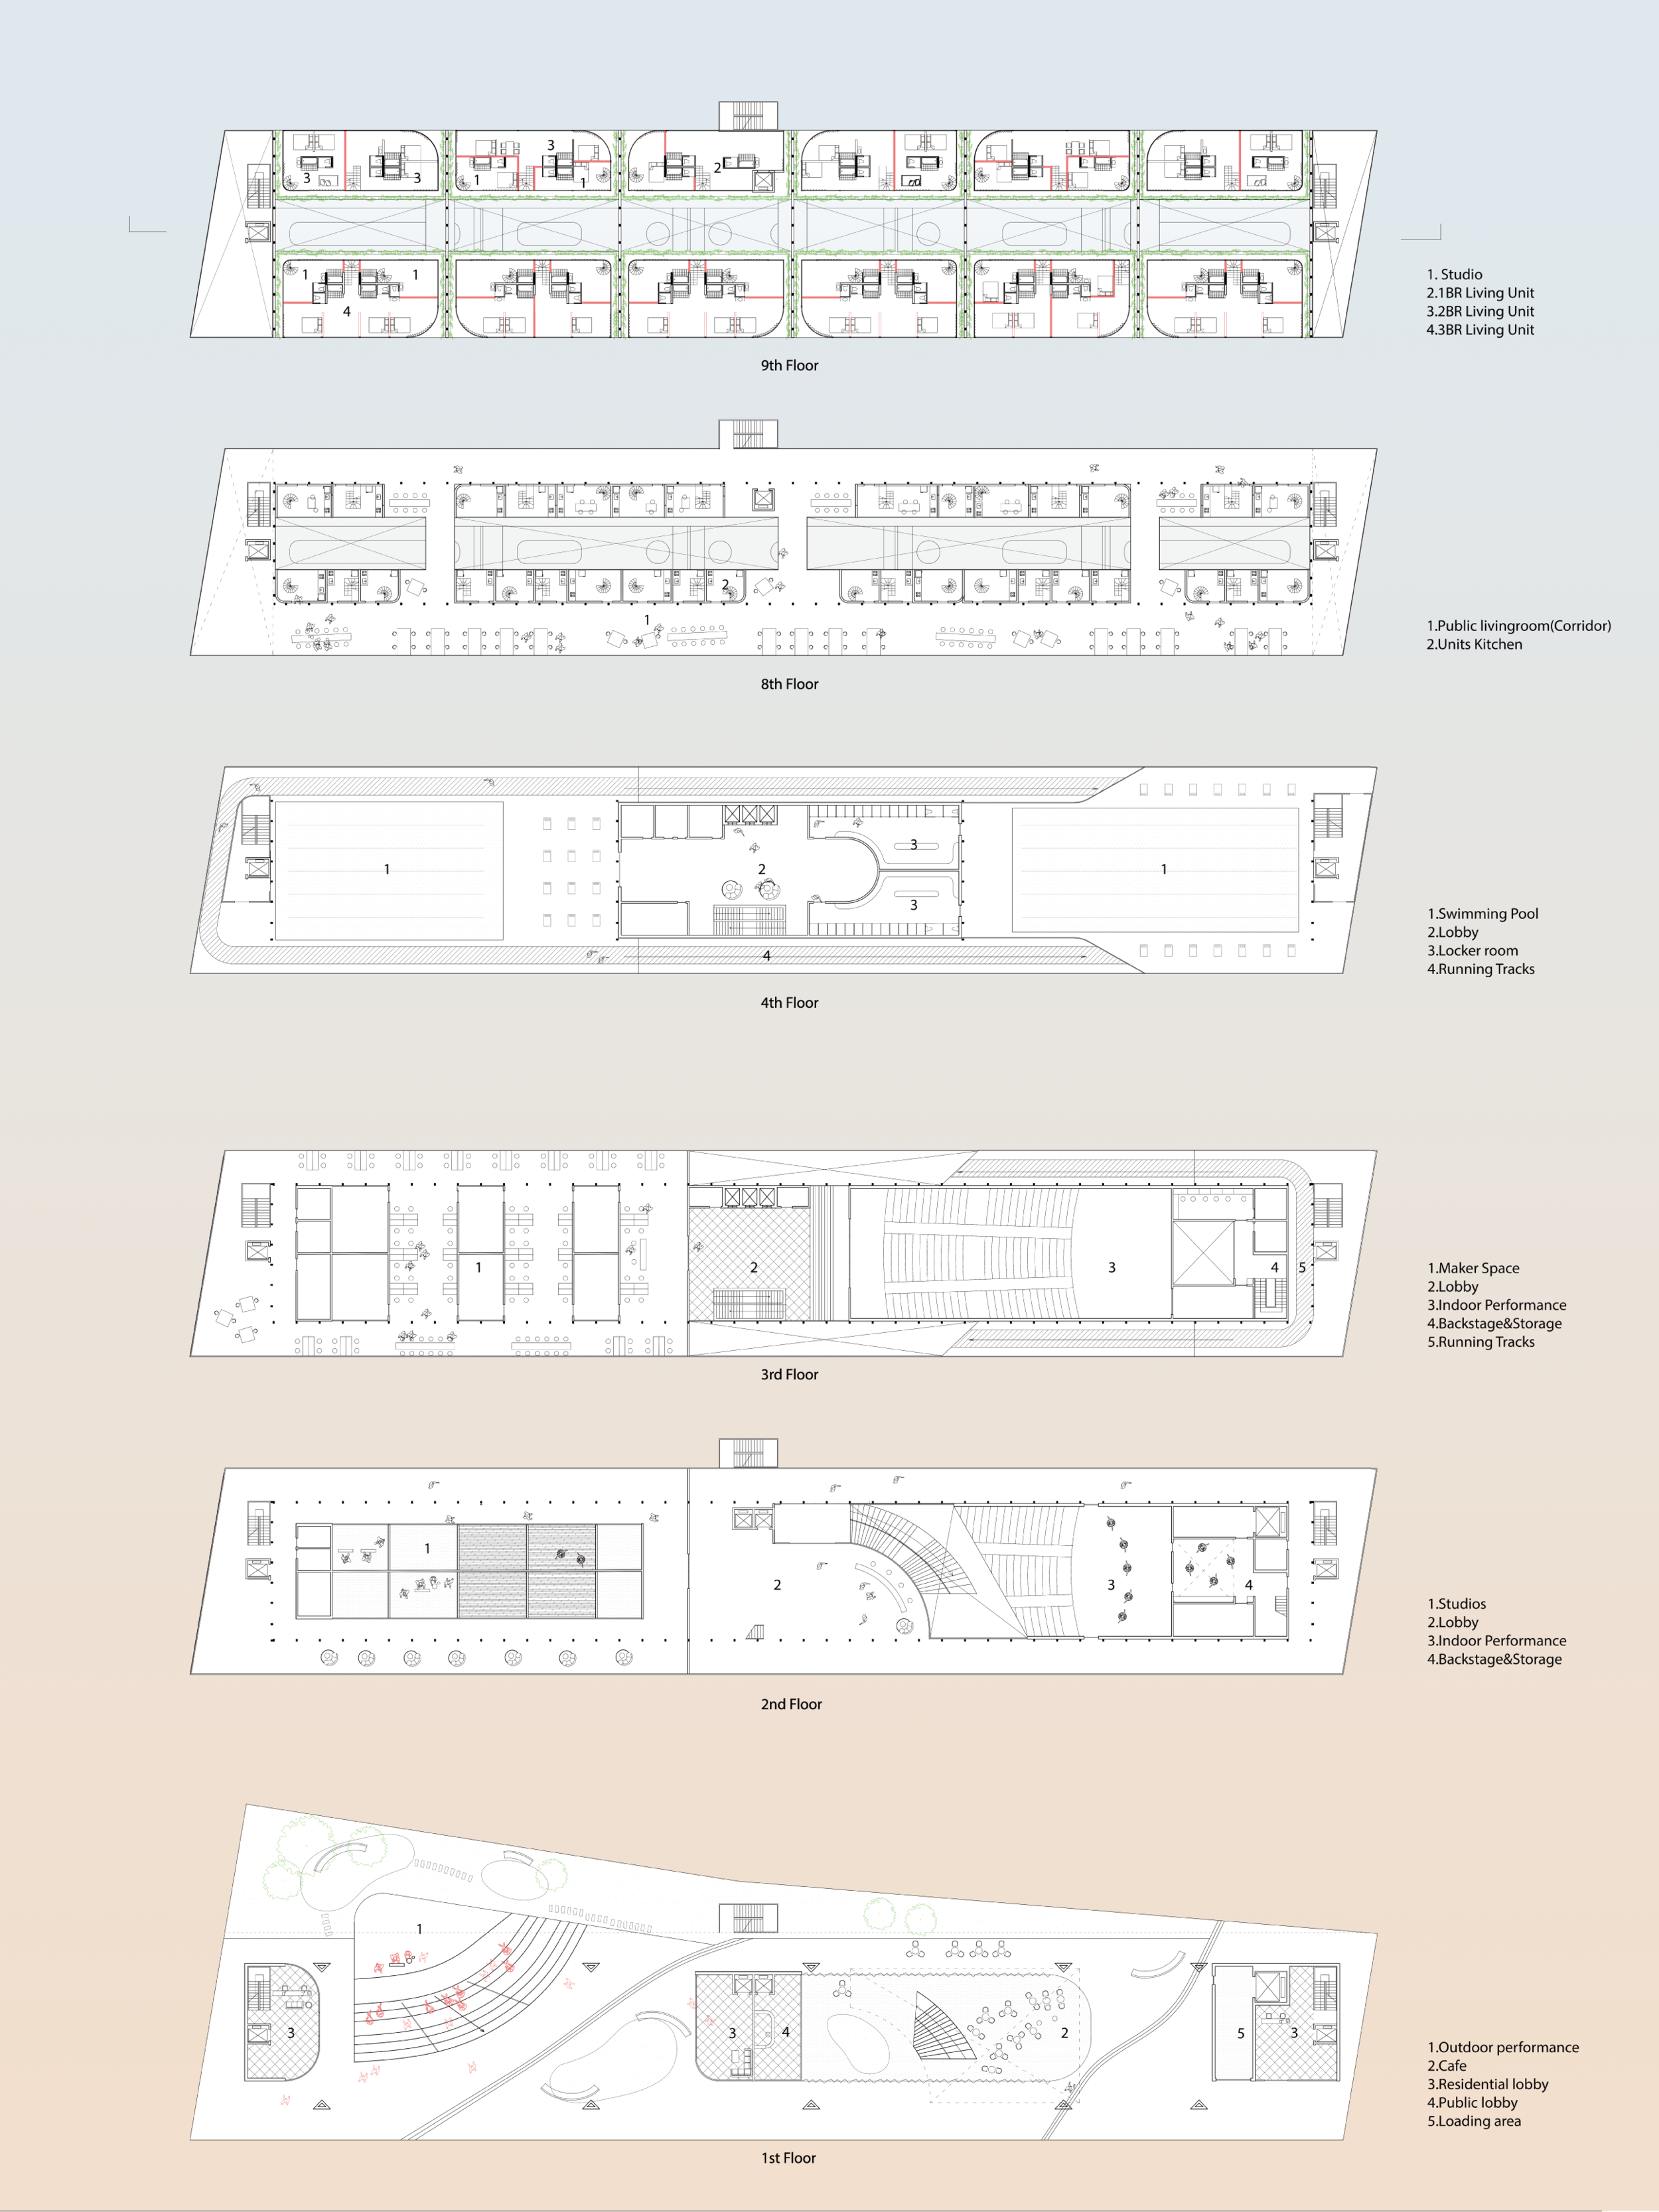 Plan, open 1st Floor with structural column, Large span 2nd floor of Indoor Performance and  school